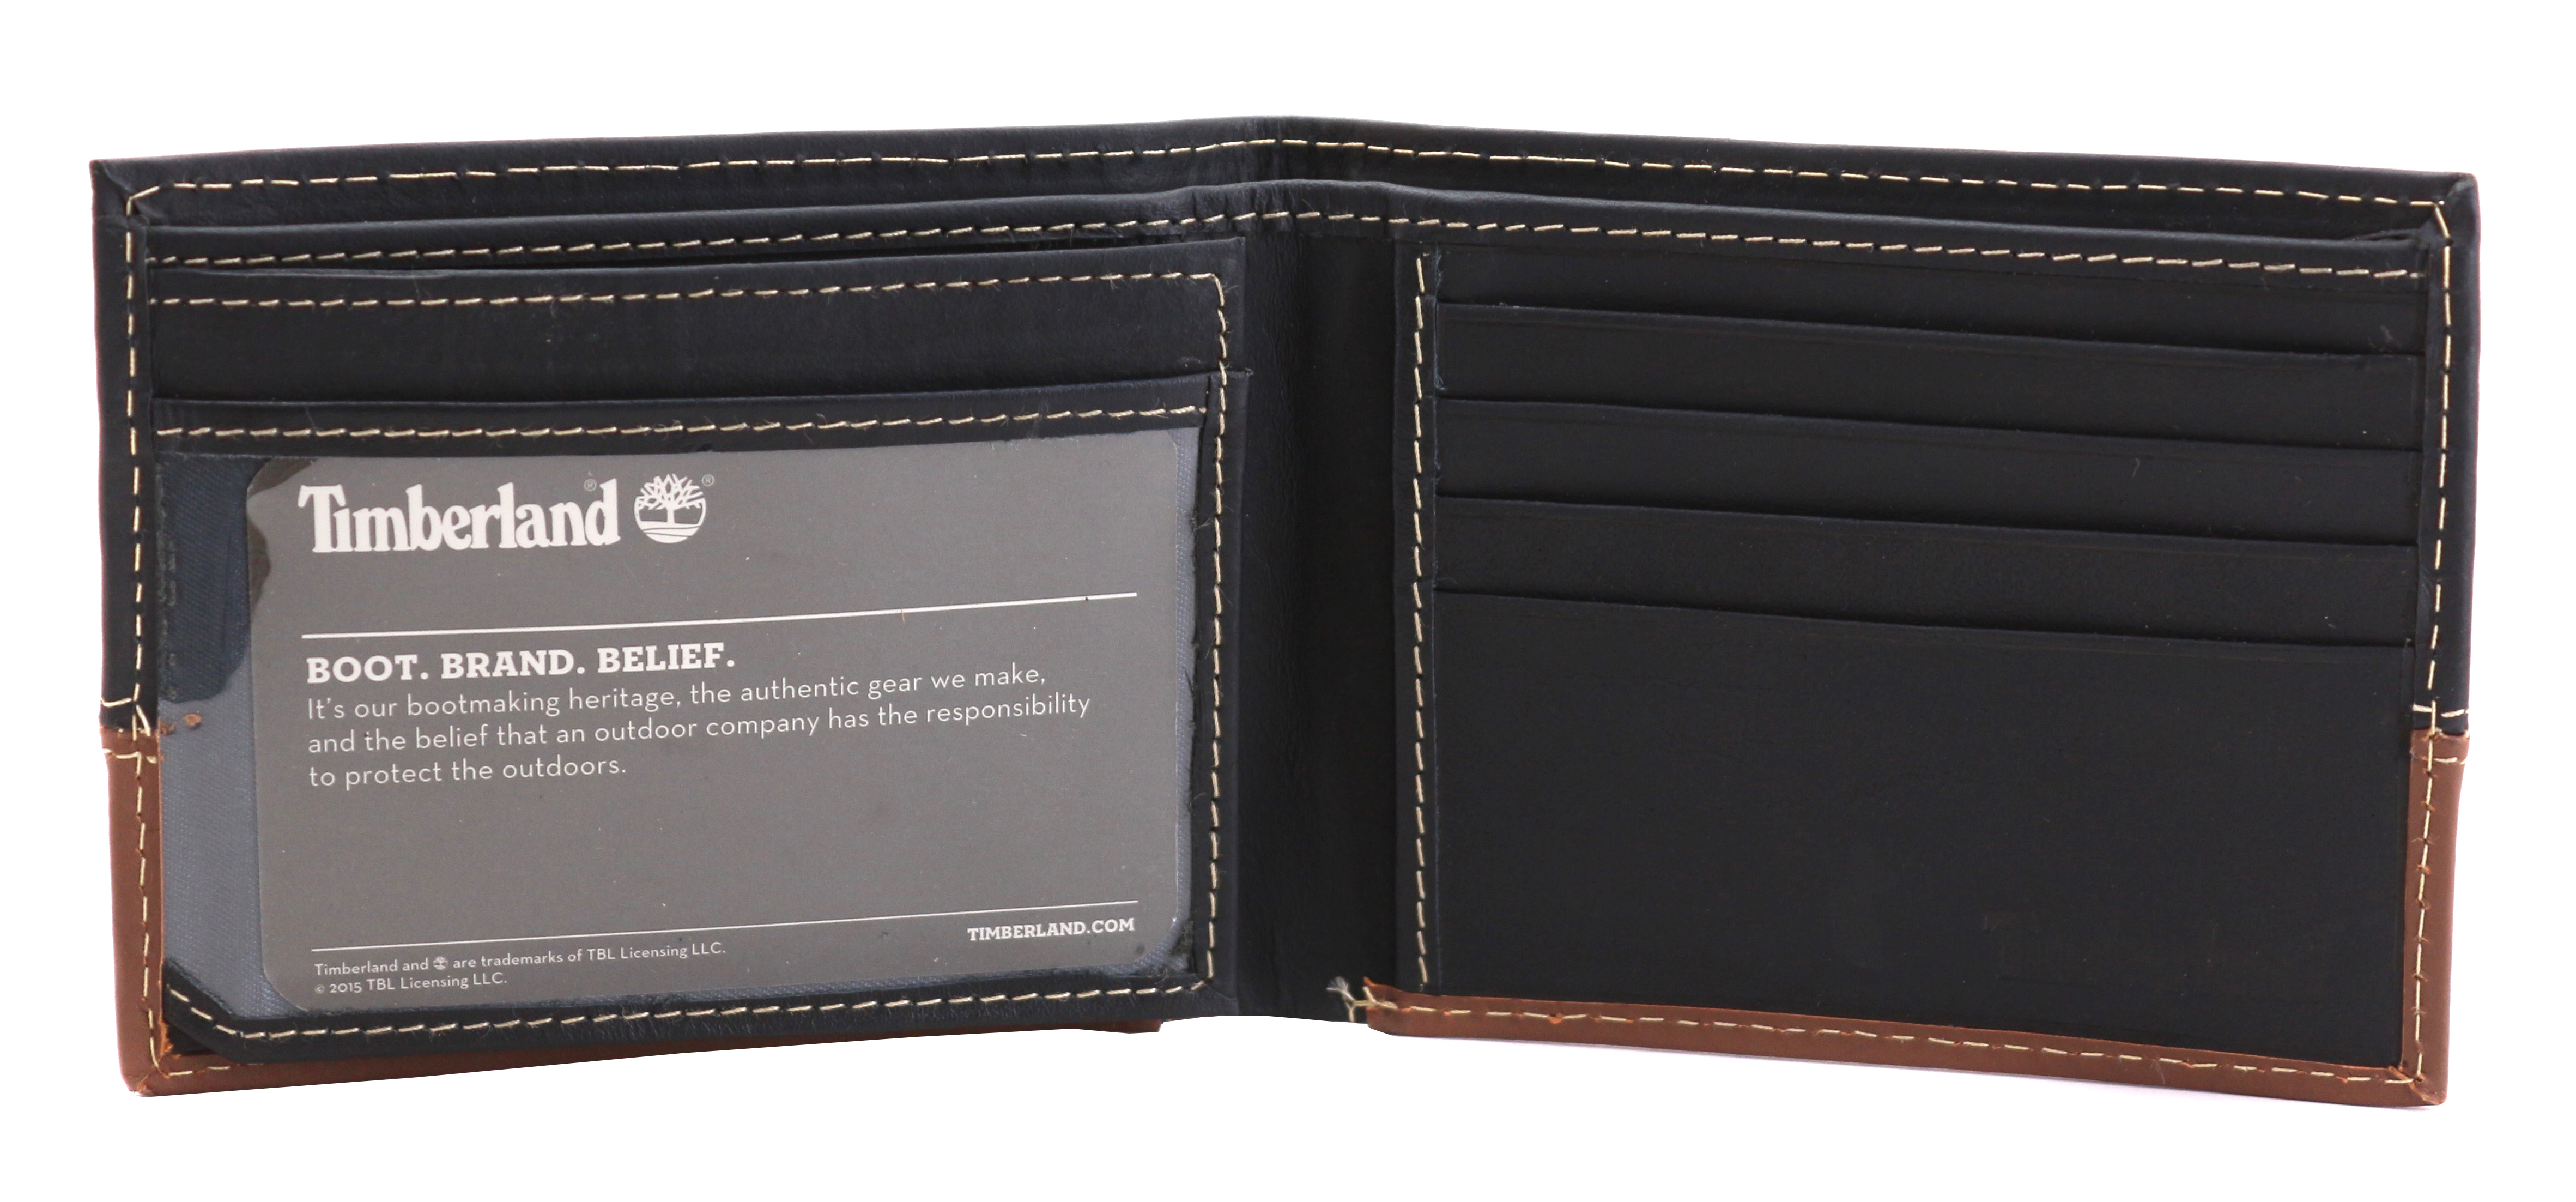 Timberland-Men-039-s-Genuine-Two-Tone-Leather-Credit-Card-Billfold-Commuter-Wallet thumbnail 13